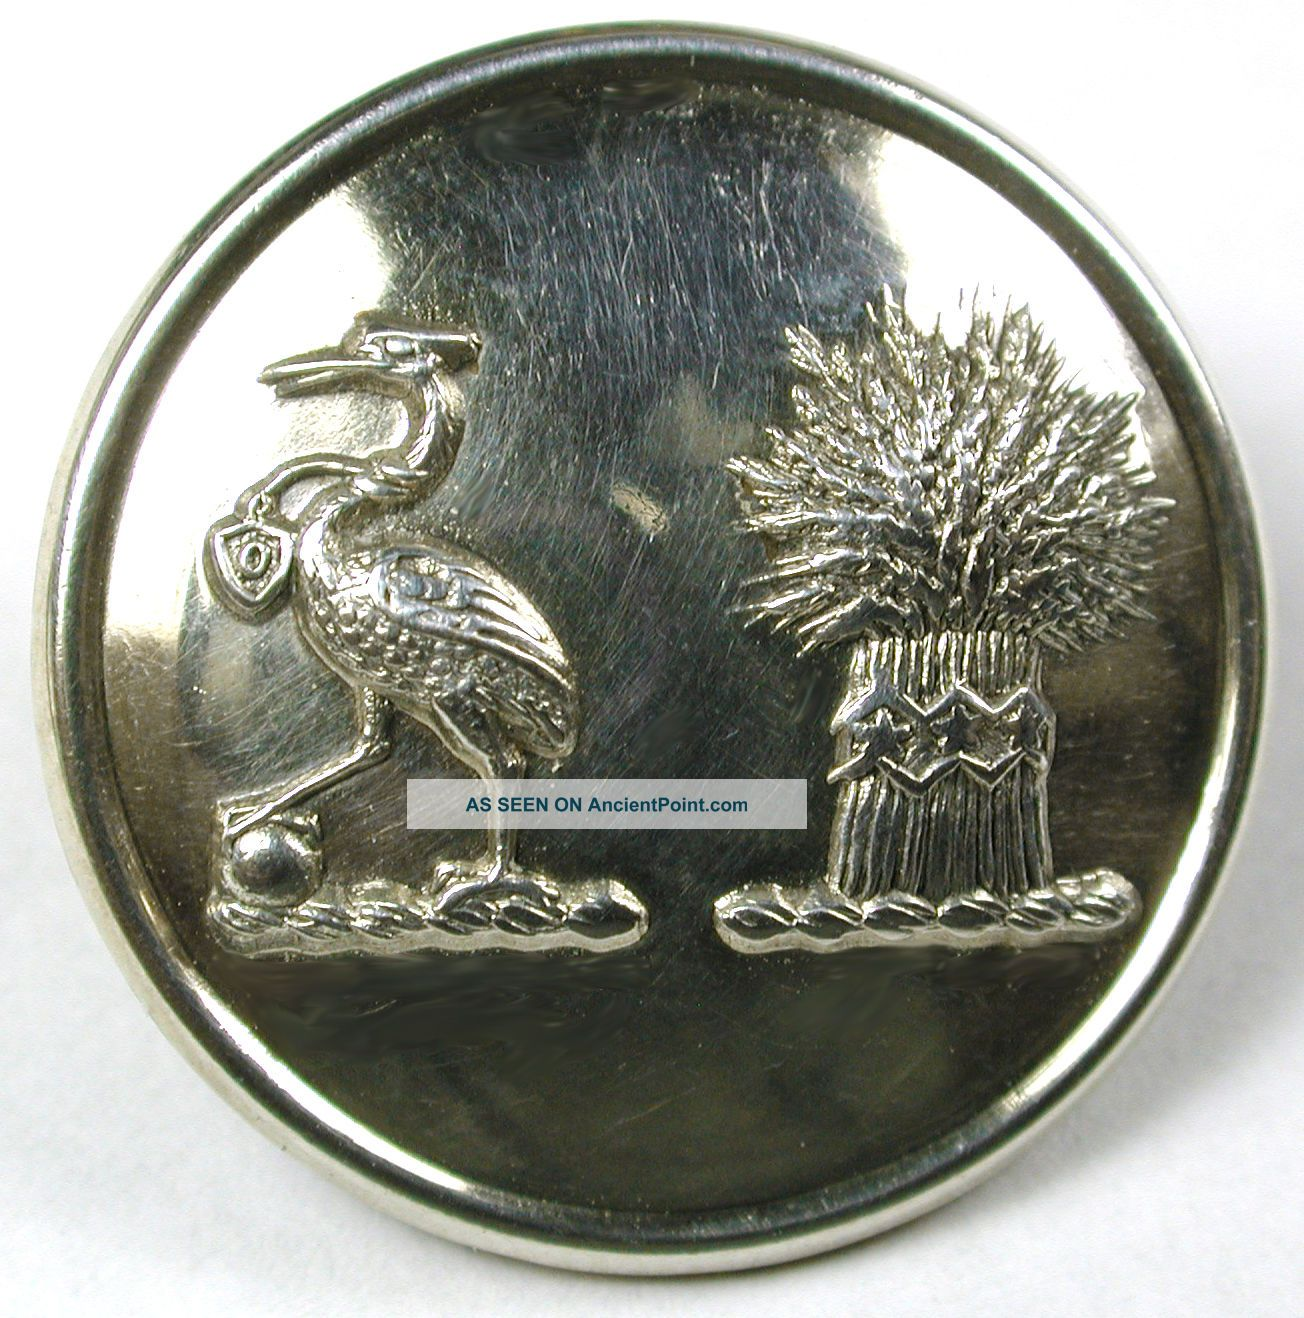 Antique Livery Button Dual Crest - Heron W/ Ball & Sheaf Of Wheat - Weldon - 1